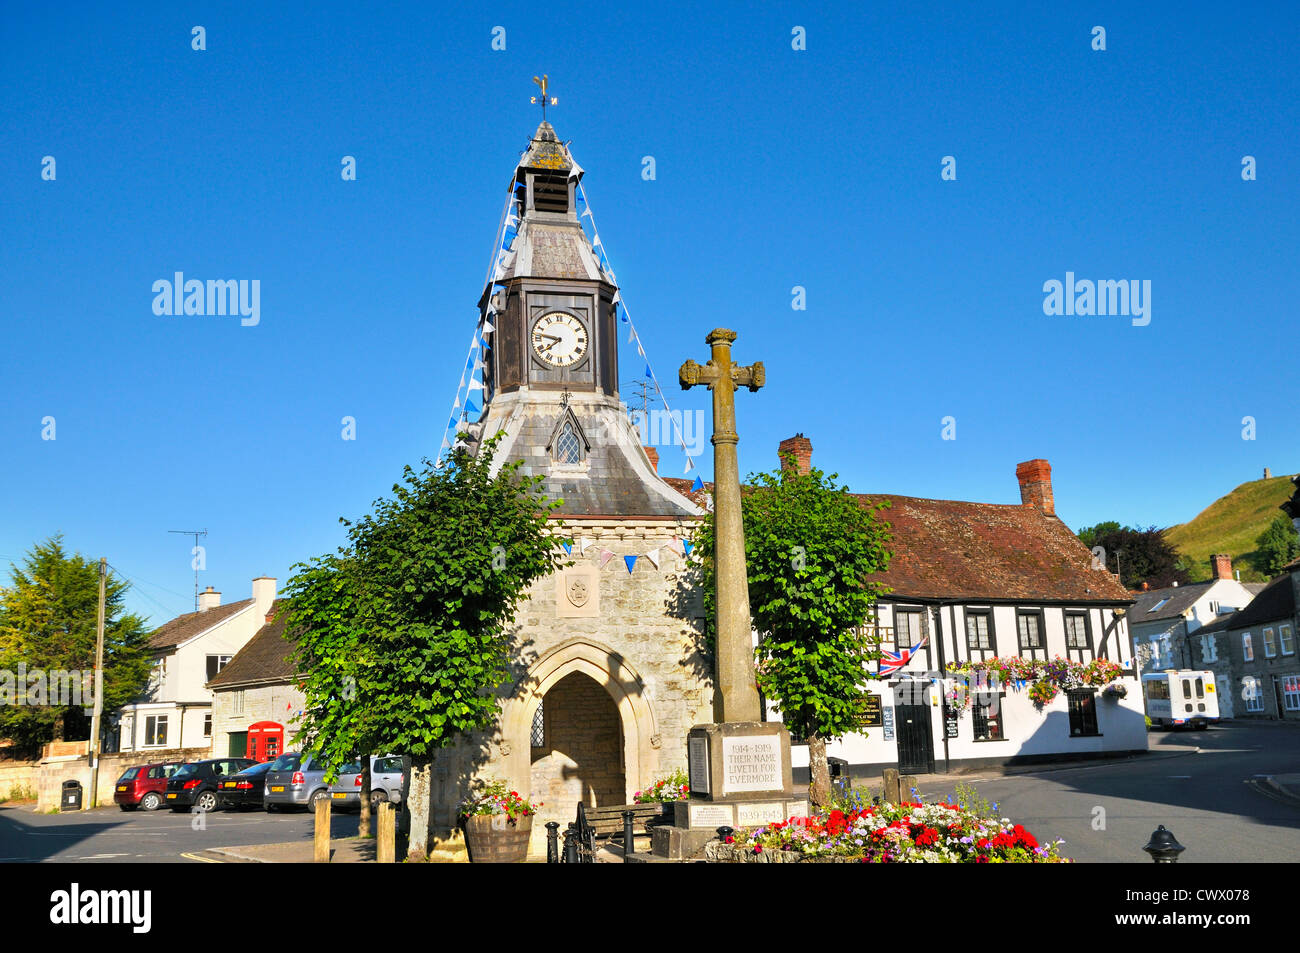 Clock tower in Mere, Wiltshire, England, UK - Stock Image